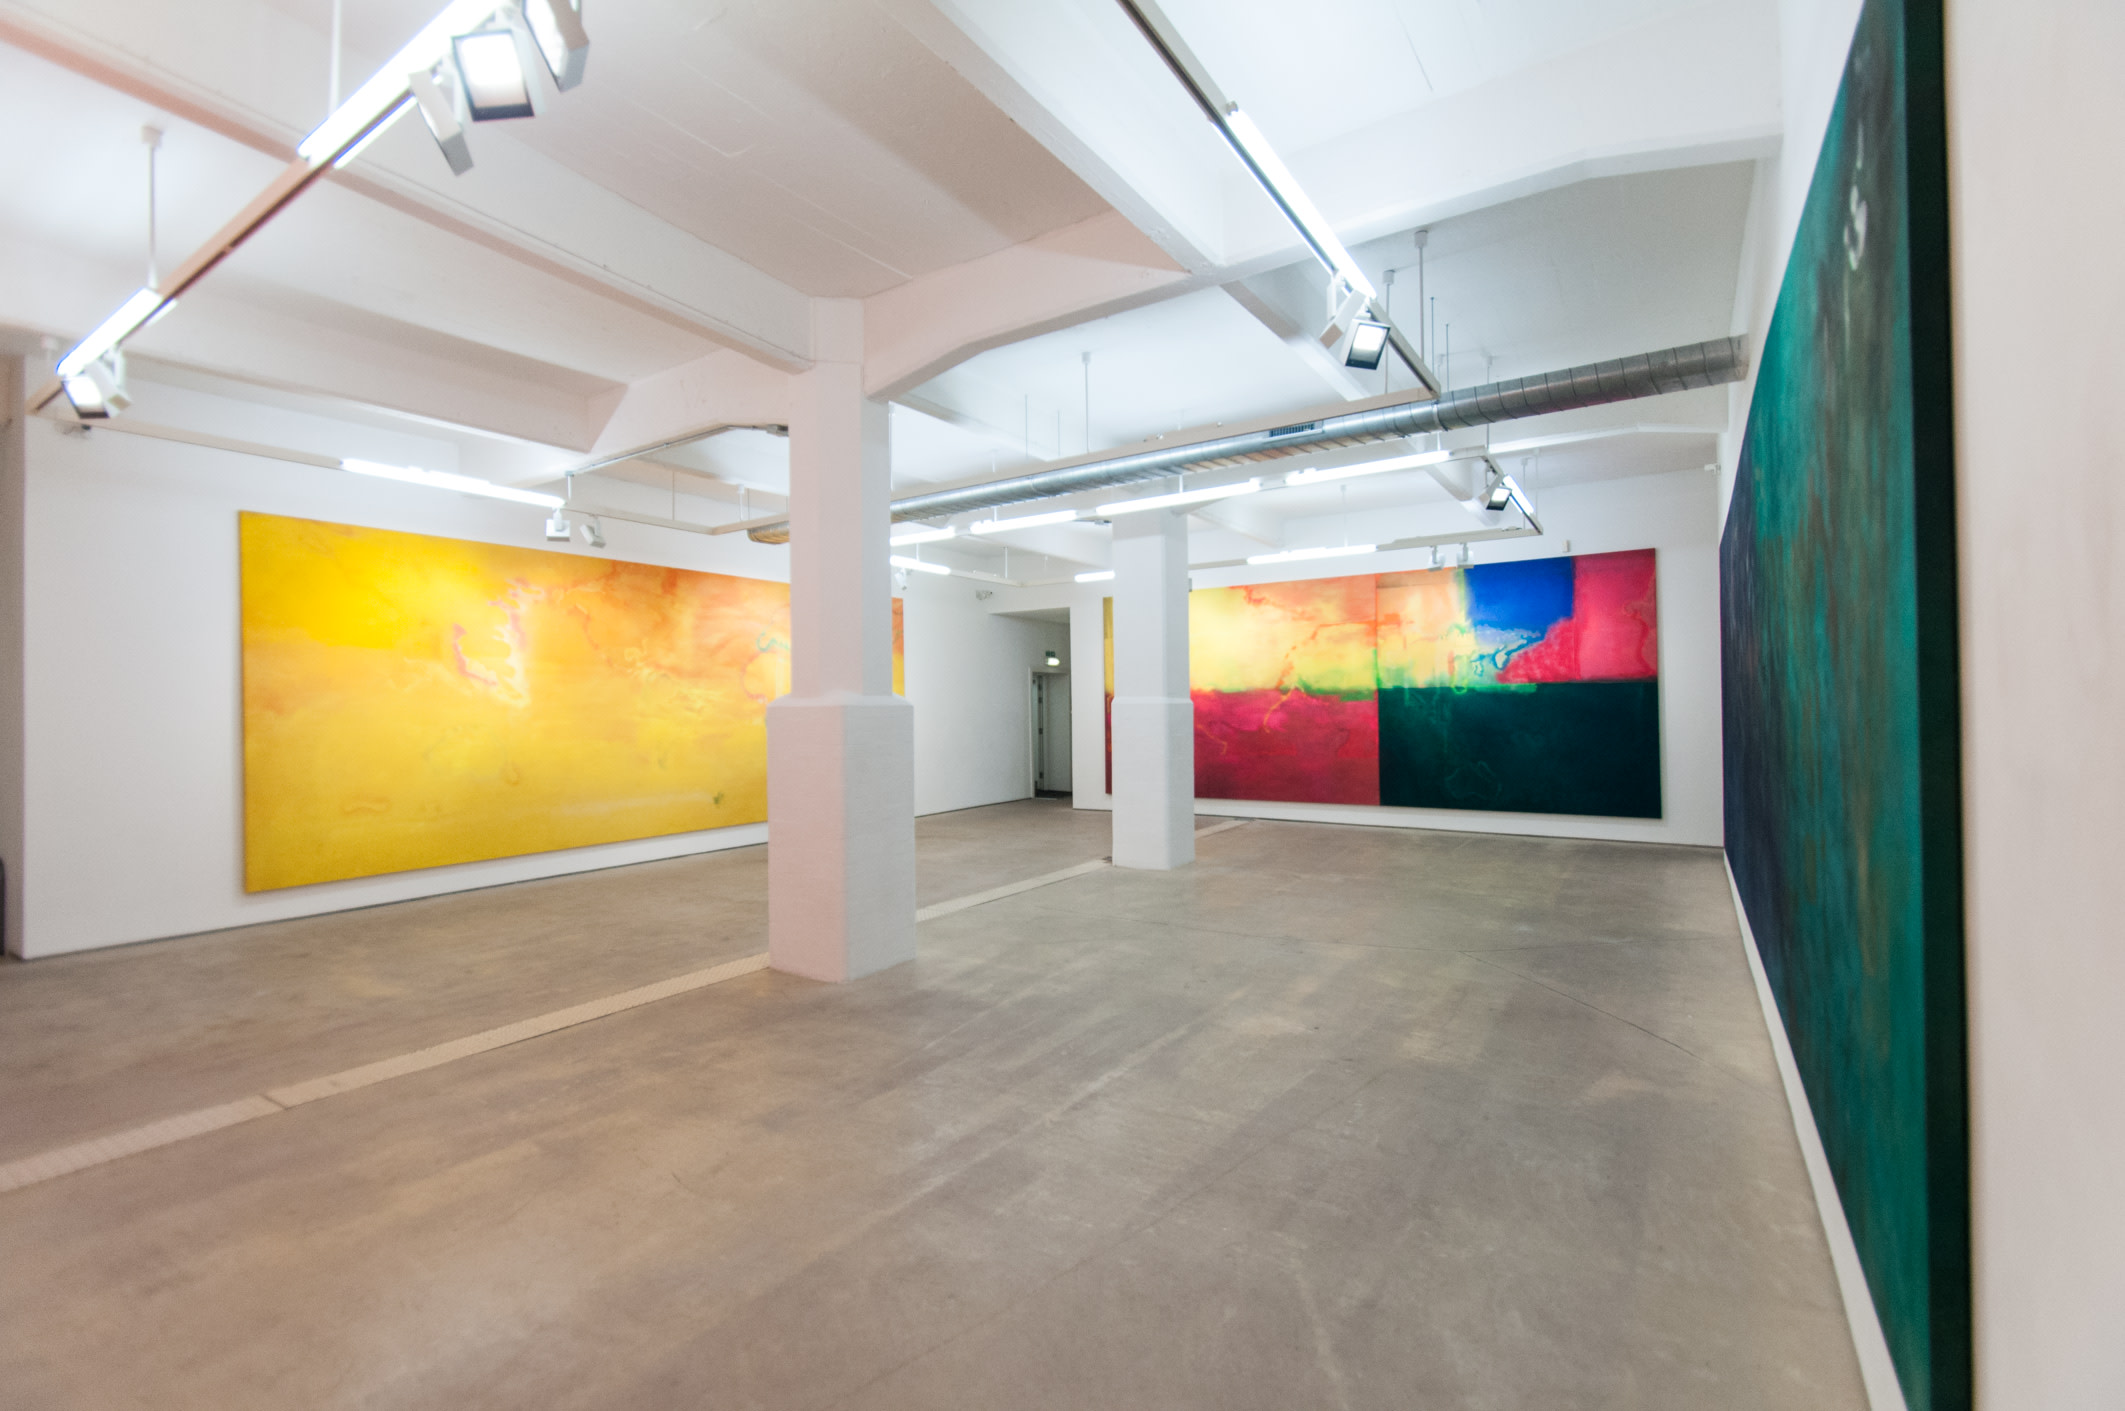 Installation view 'The Map Paintings 1967-1971', Hales London, 16 October - 23 November 2013